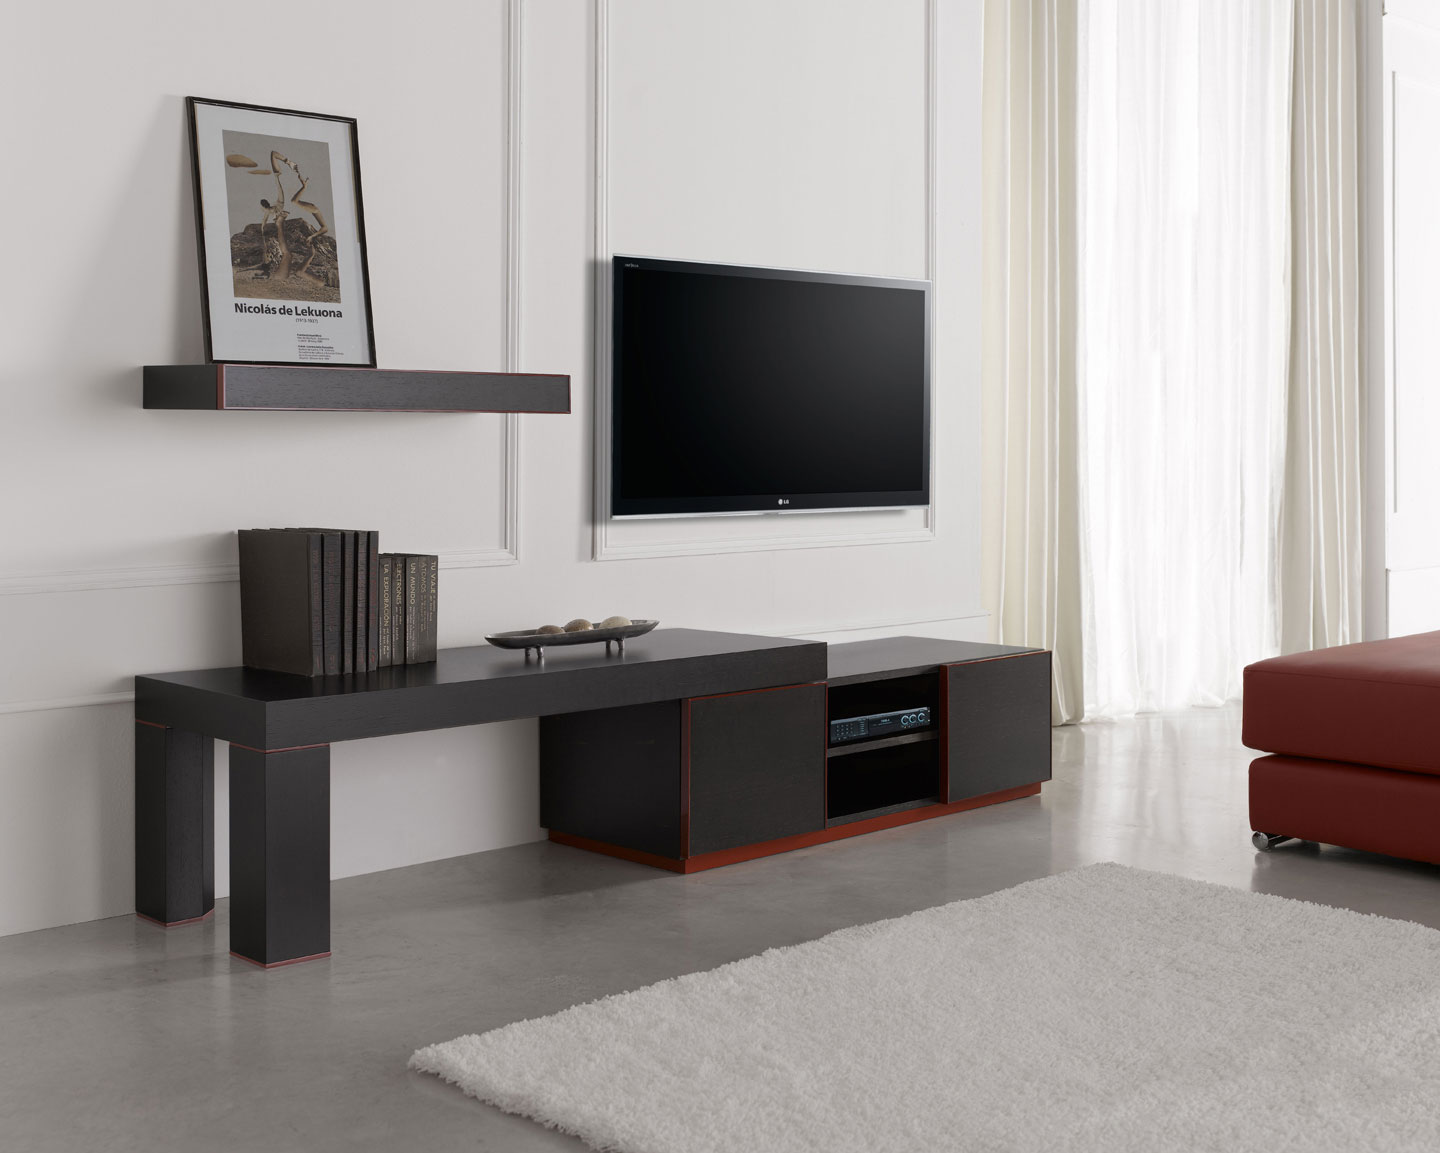 Stupendous Inessa Modern Long Tv Stand In Red And Black Finish Download Free Architecture Designs Scobabritishbridgeorg